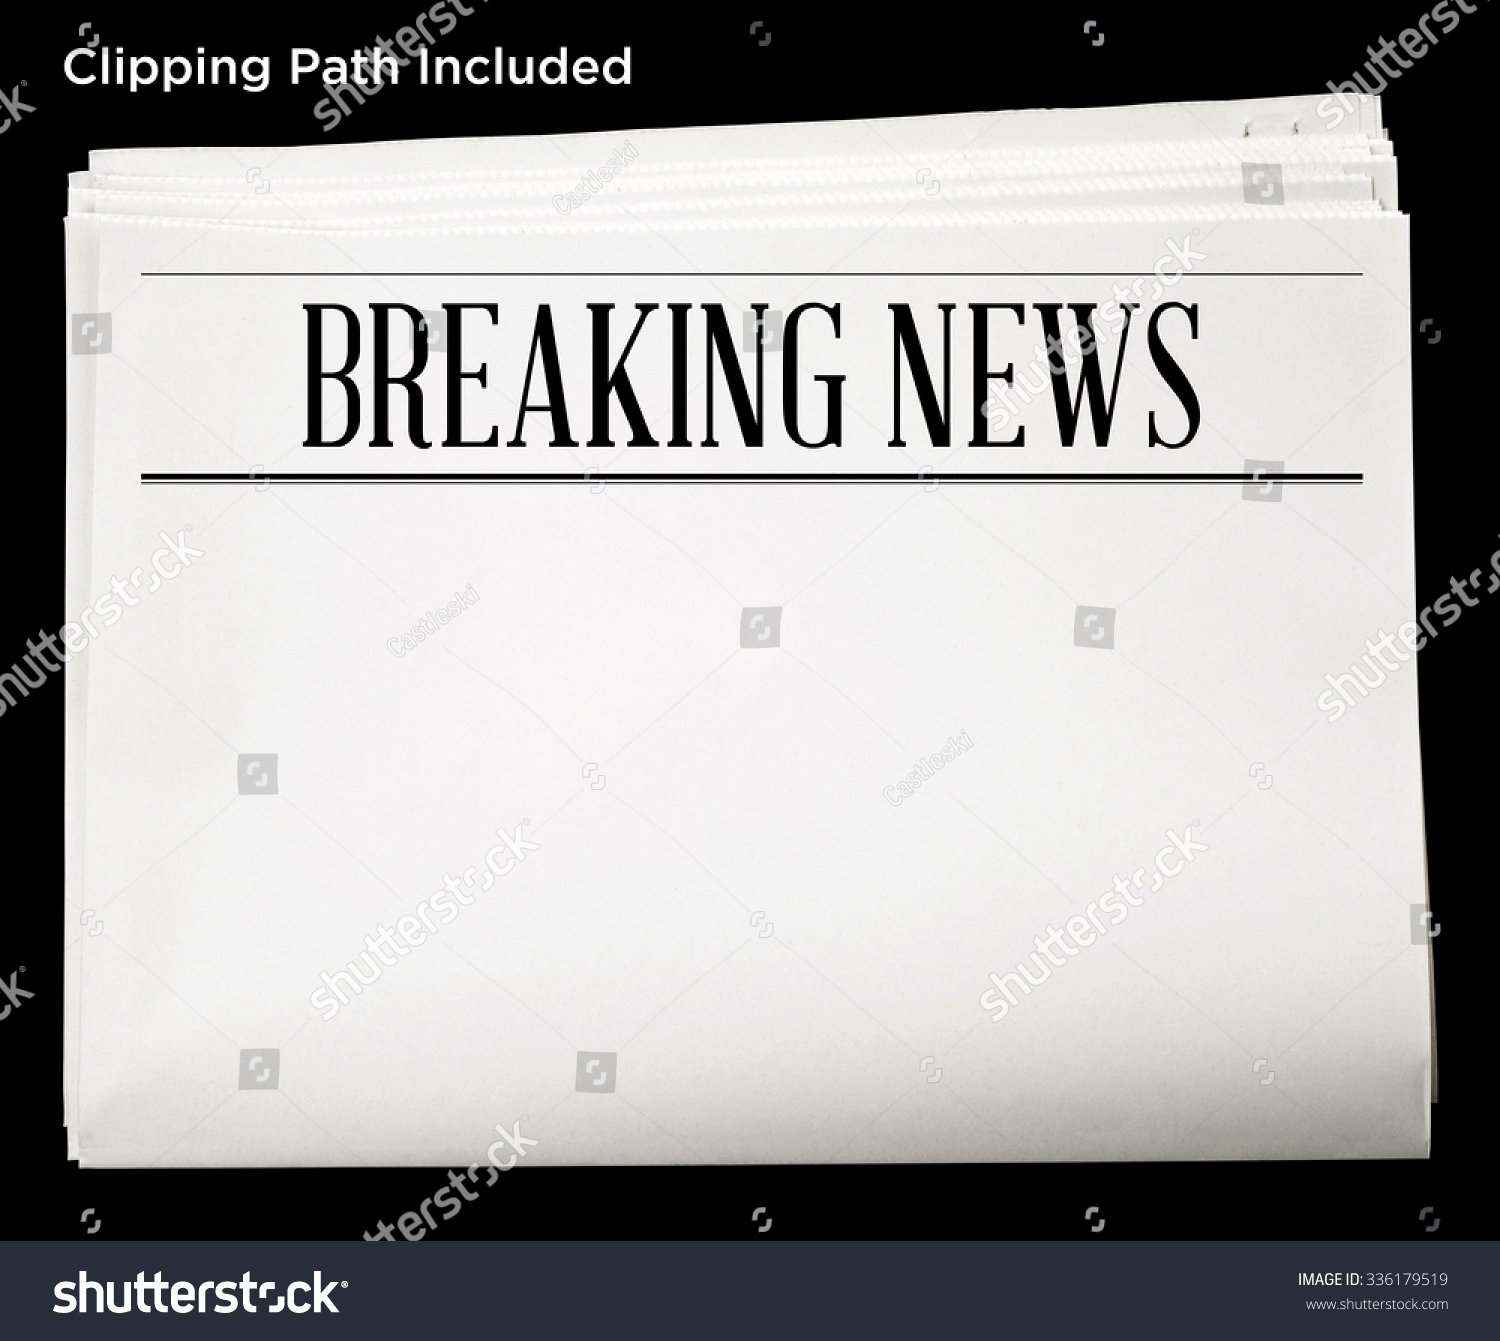 Breaking News Template Free Fresh Newspaper with Breaking News Headline and Blank Content